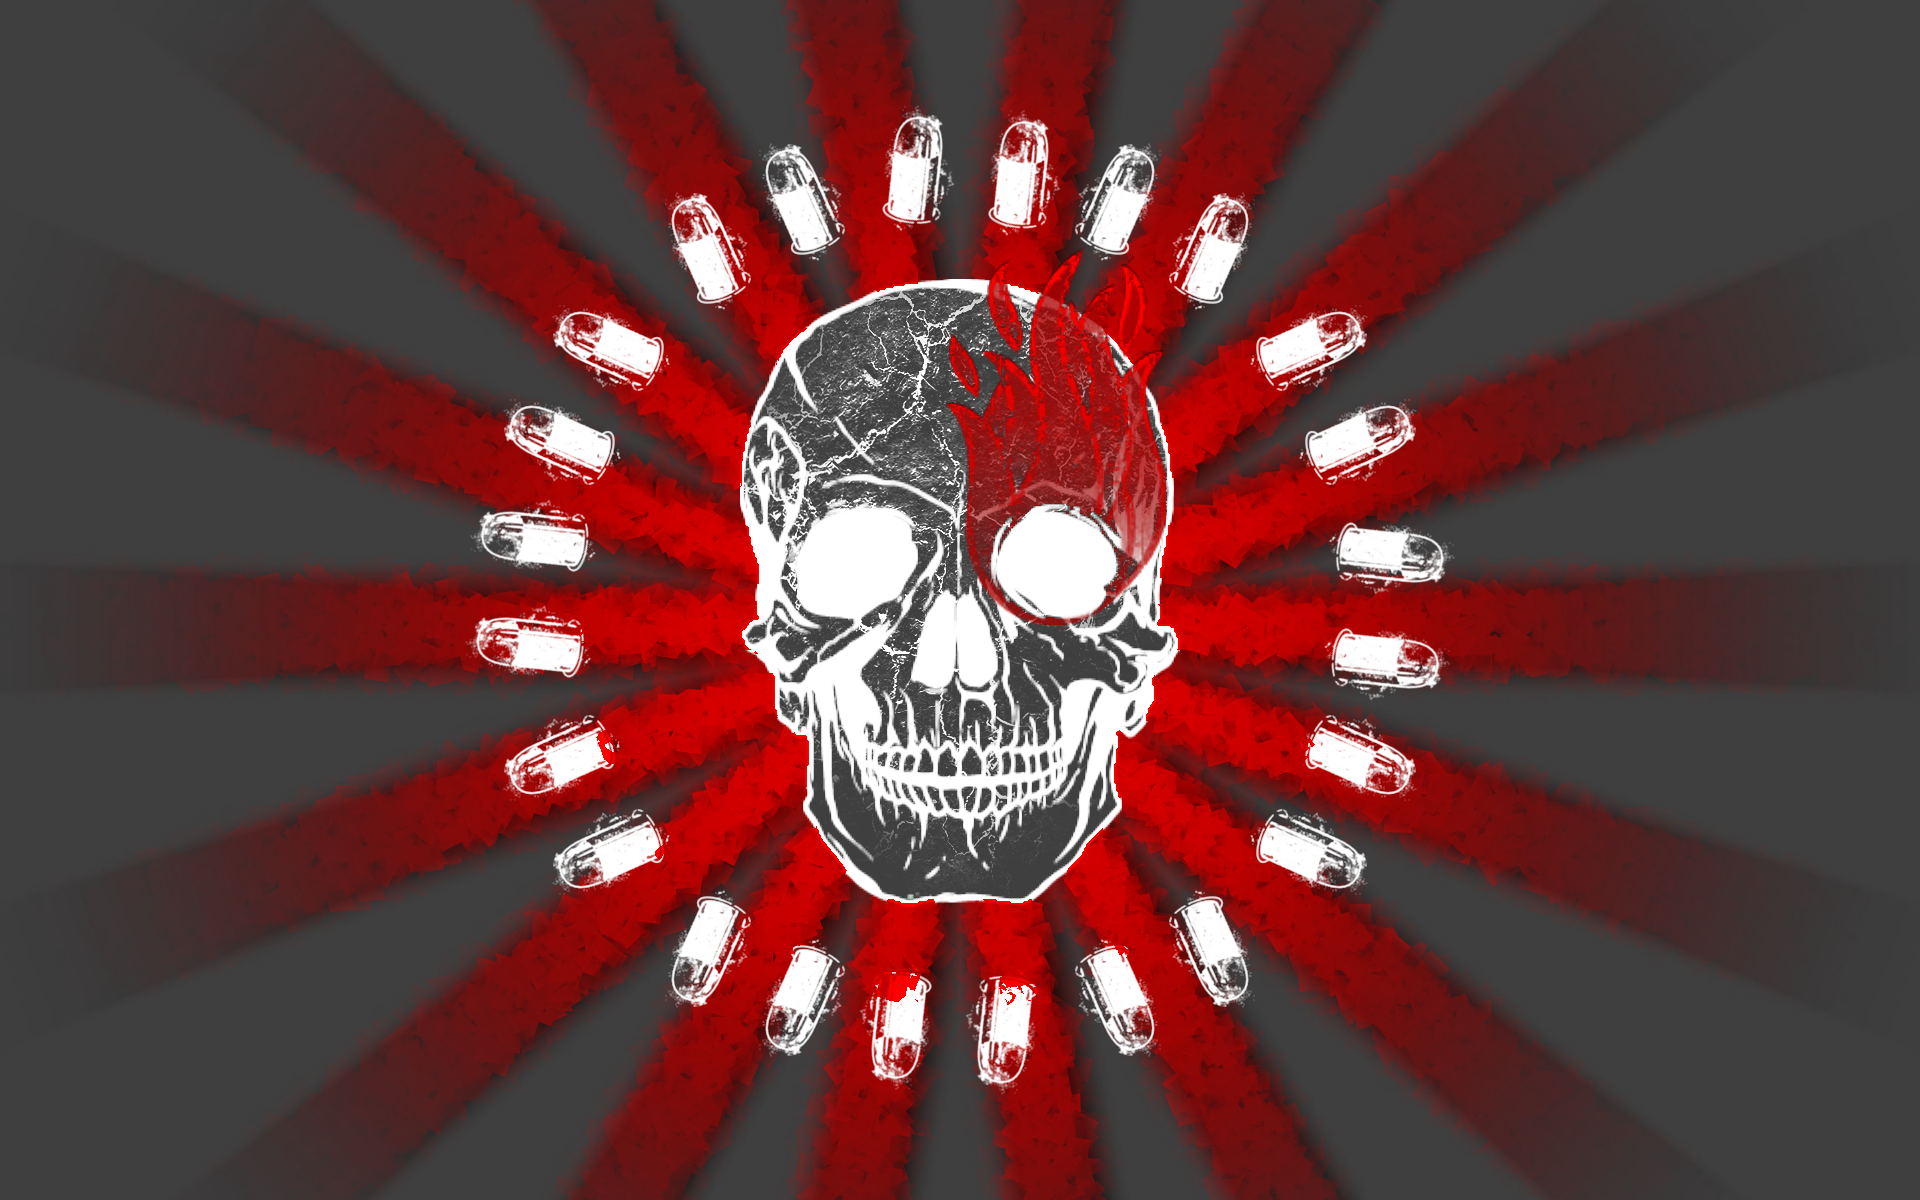 Red Wallpaper 1920x1200 Skulls Red Ammunition Rising Sun Flame 1920x1200